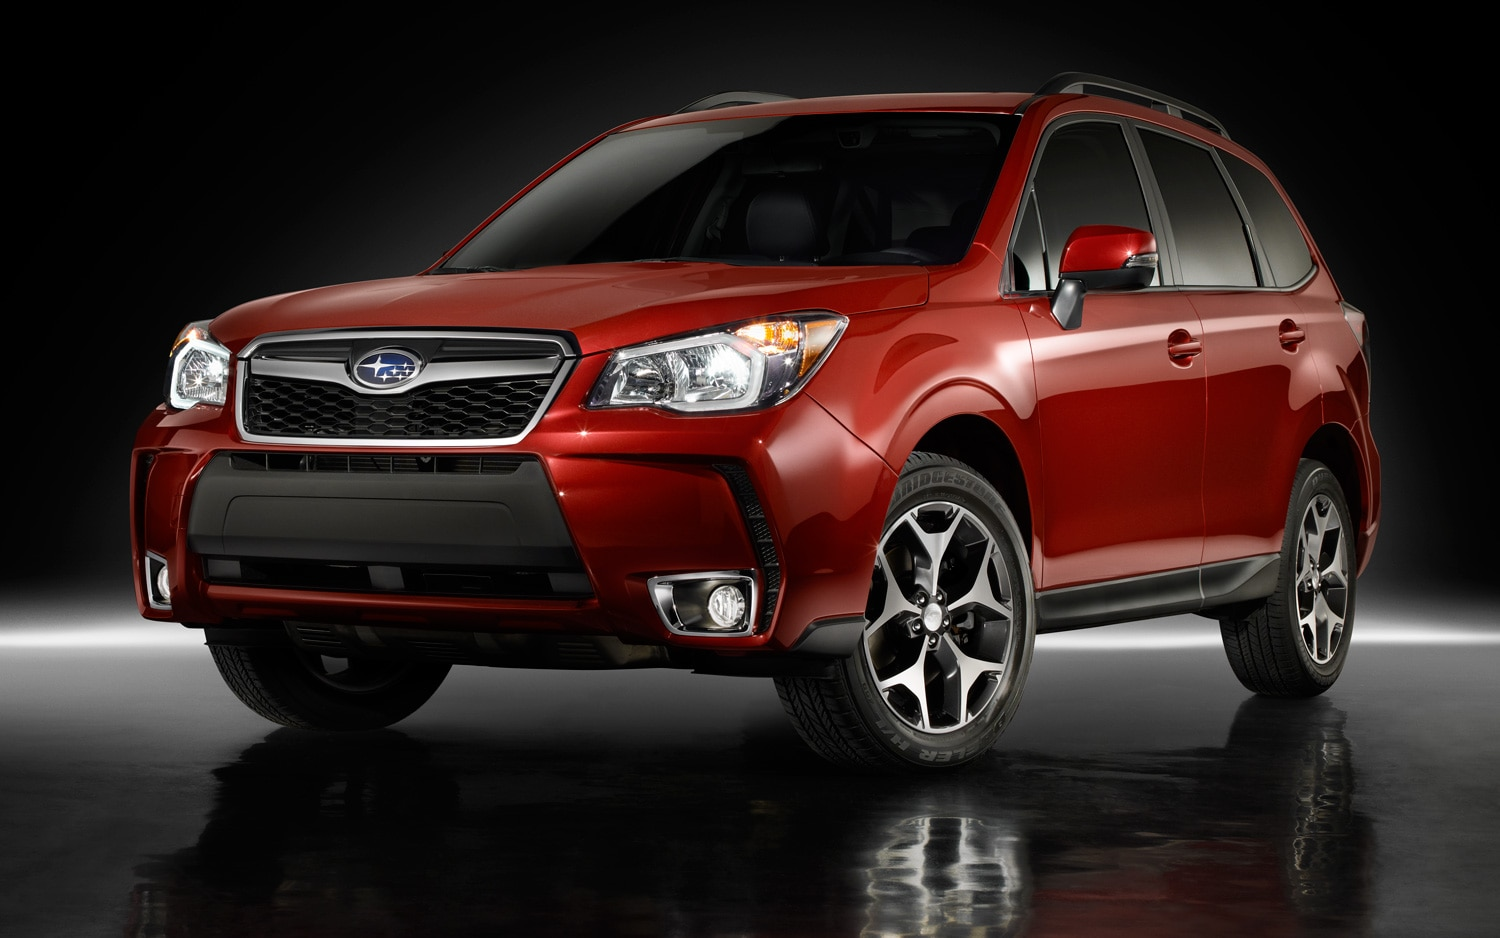 2014 Subaru Forester Turbo Front View1